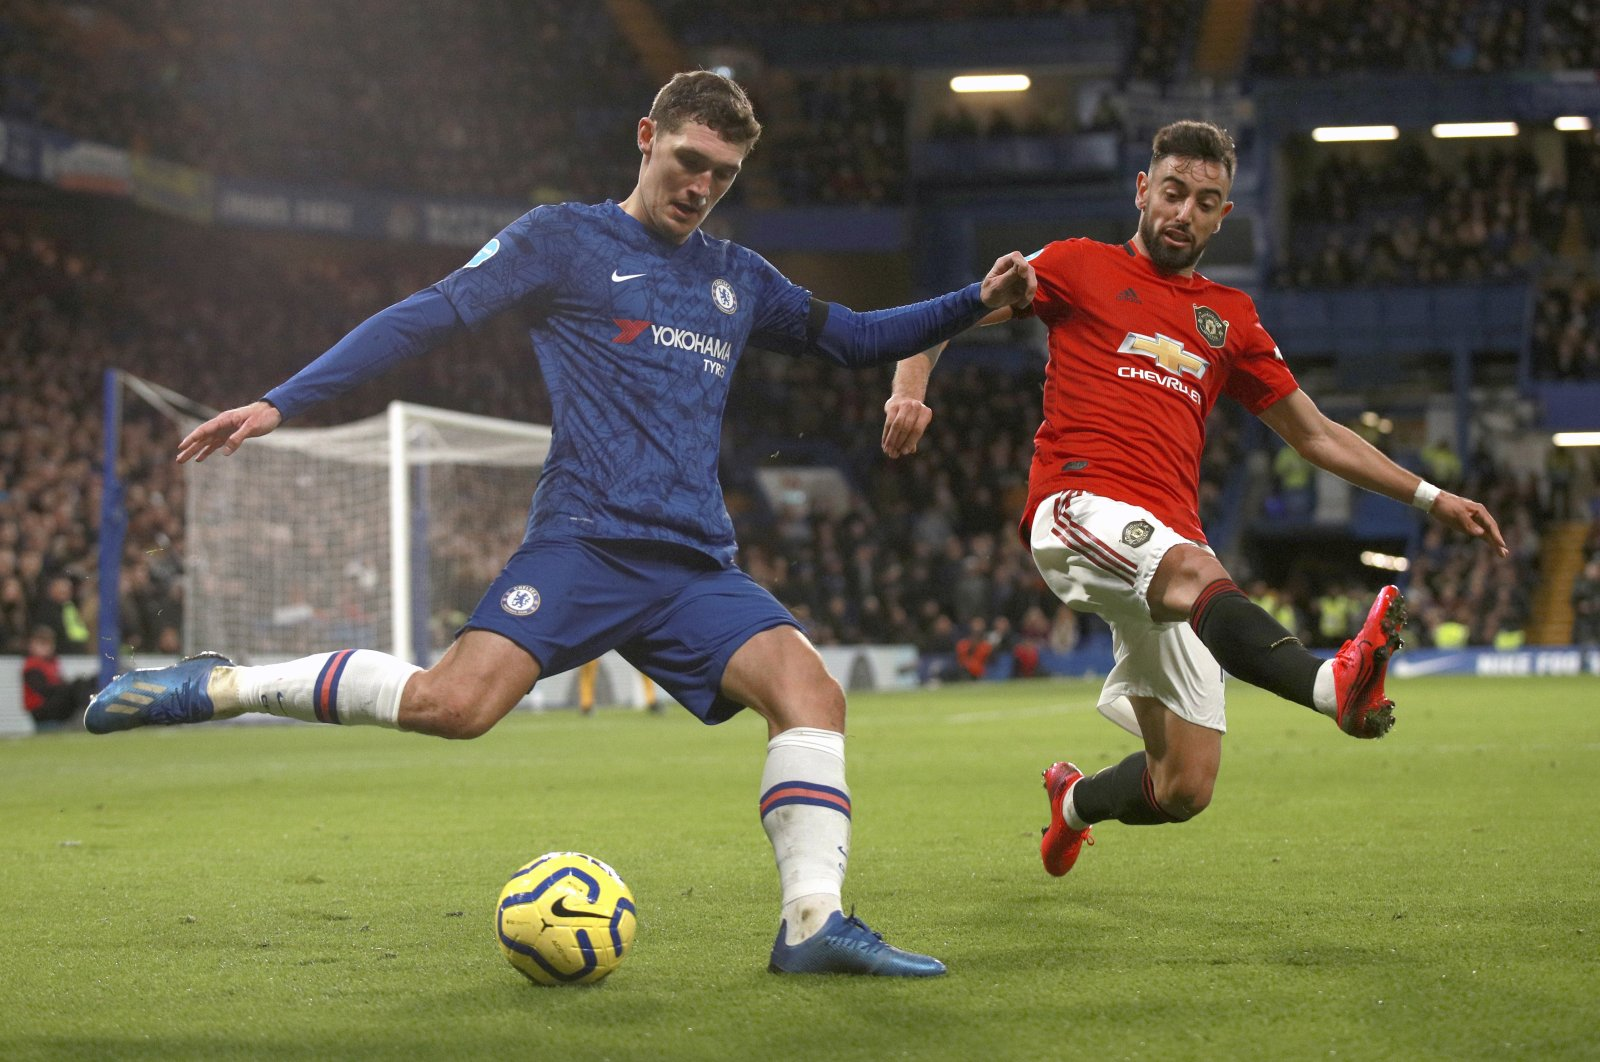 Chelsea's Andreas Christensen (L) and Manchester United's Bruno Fernandes in action during a match in London, England, Feb. 17, 2020. (AP Photo)